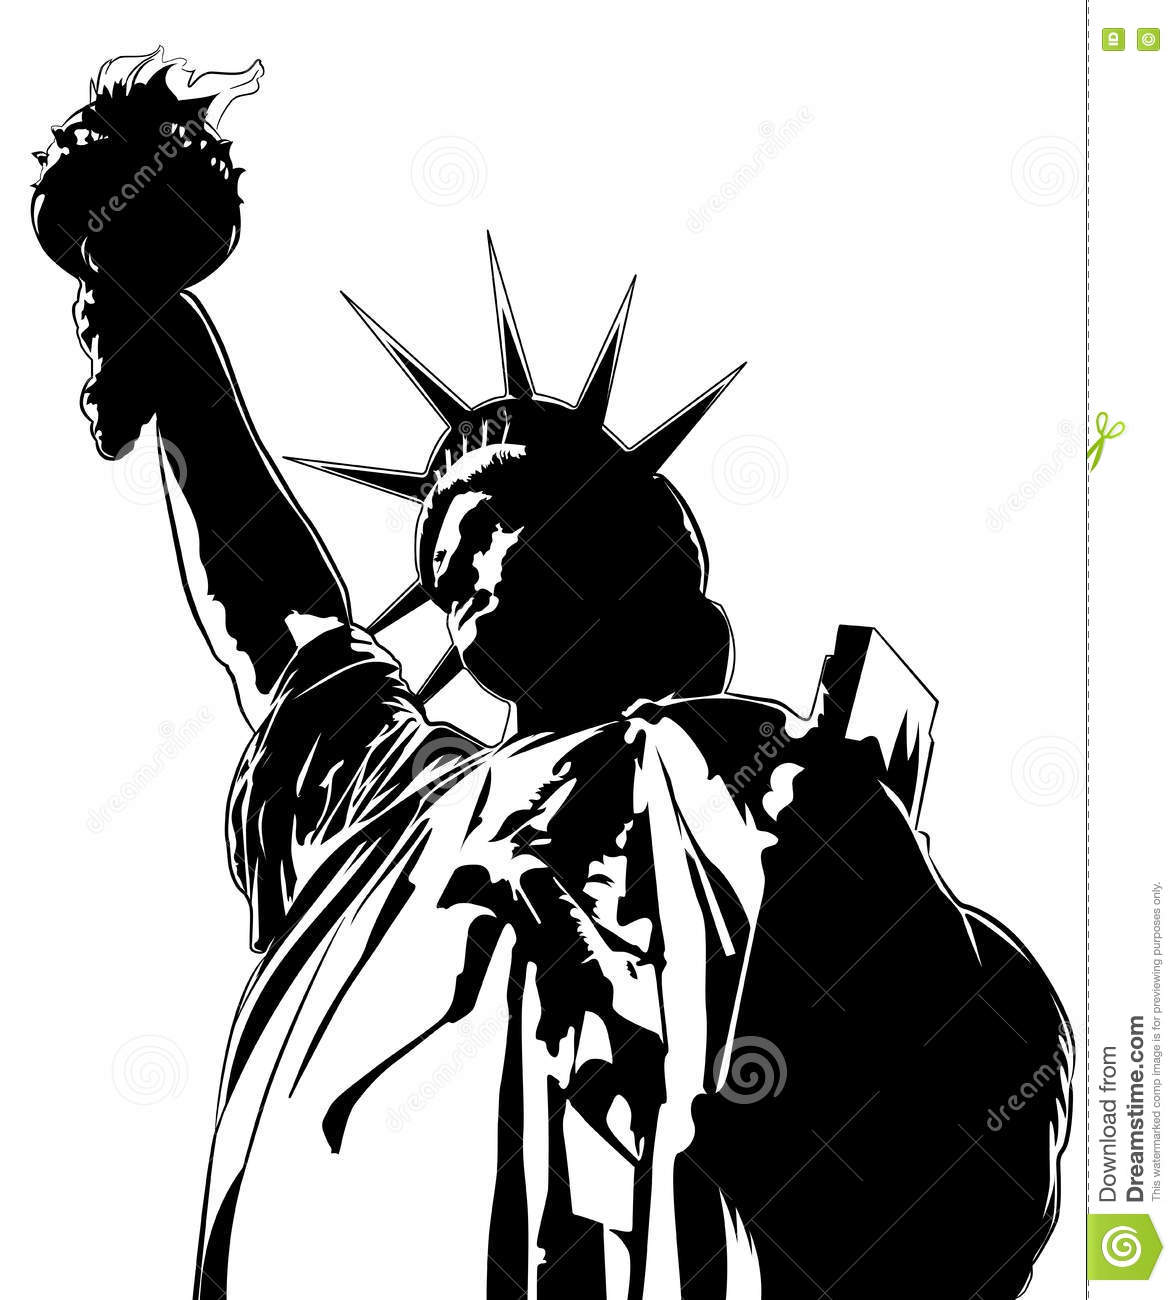 statue of liberty vector image stock vector illustration of rh dreamstime com statue of liberty vector art statue of liberty vector free download